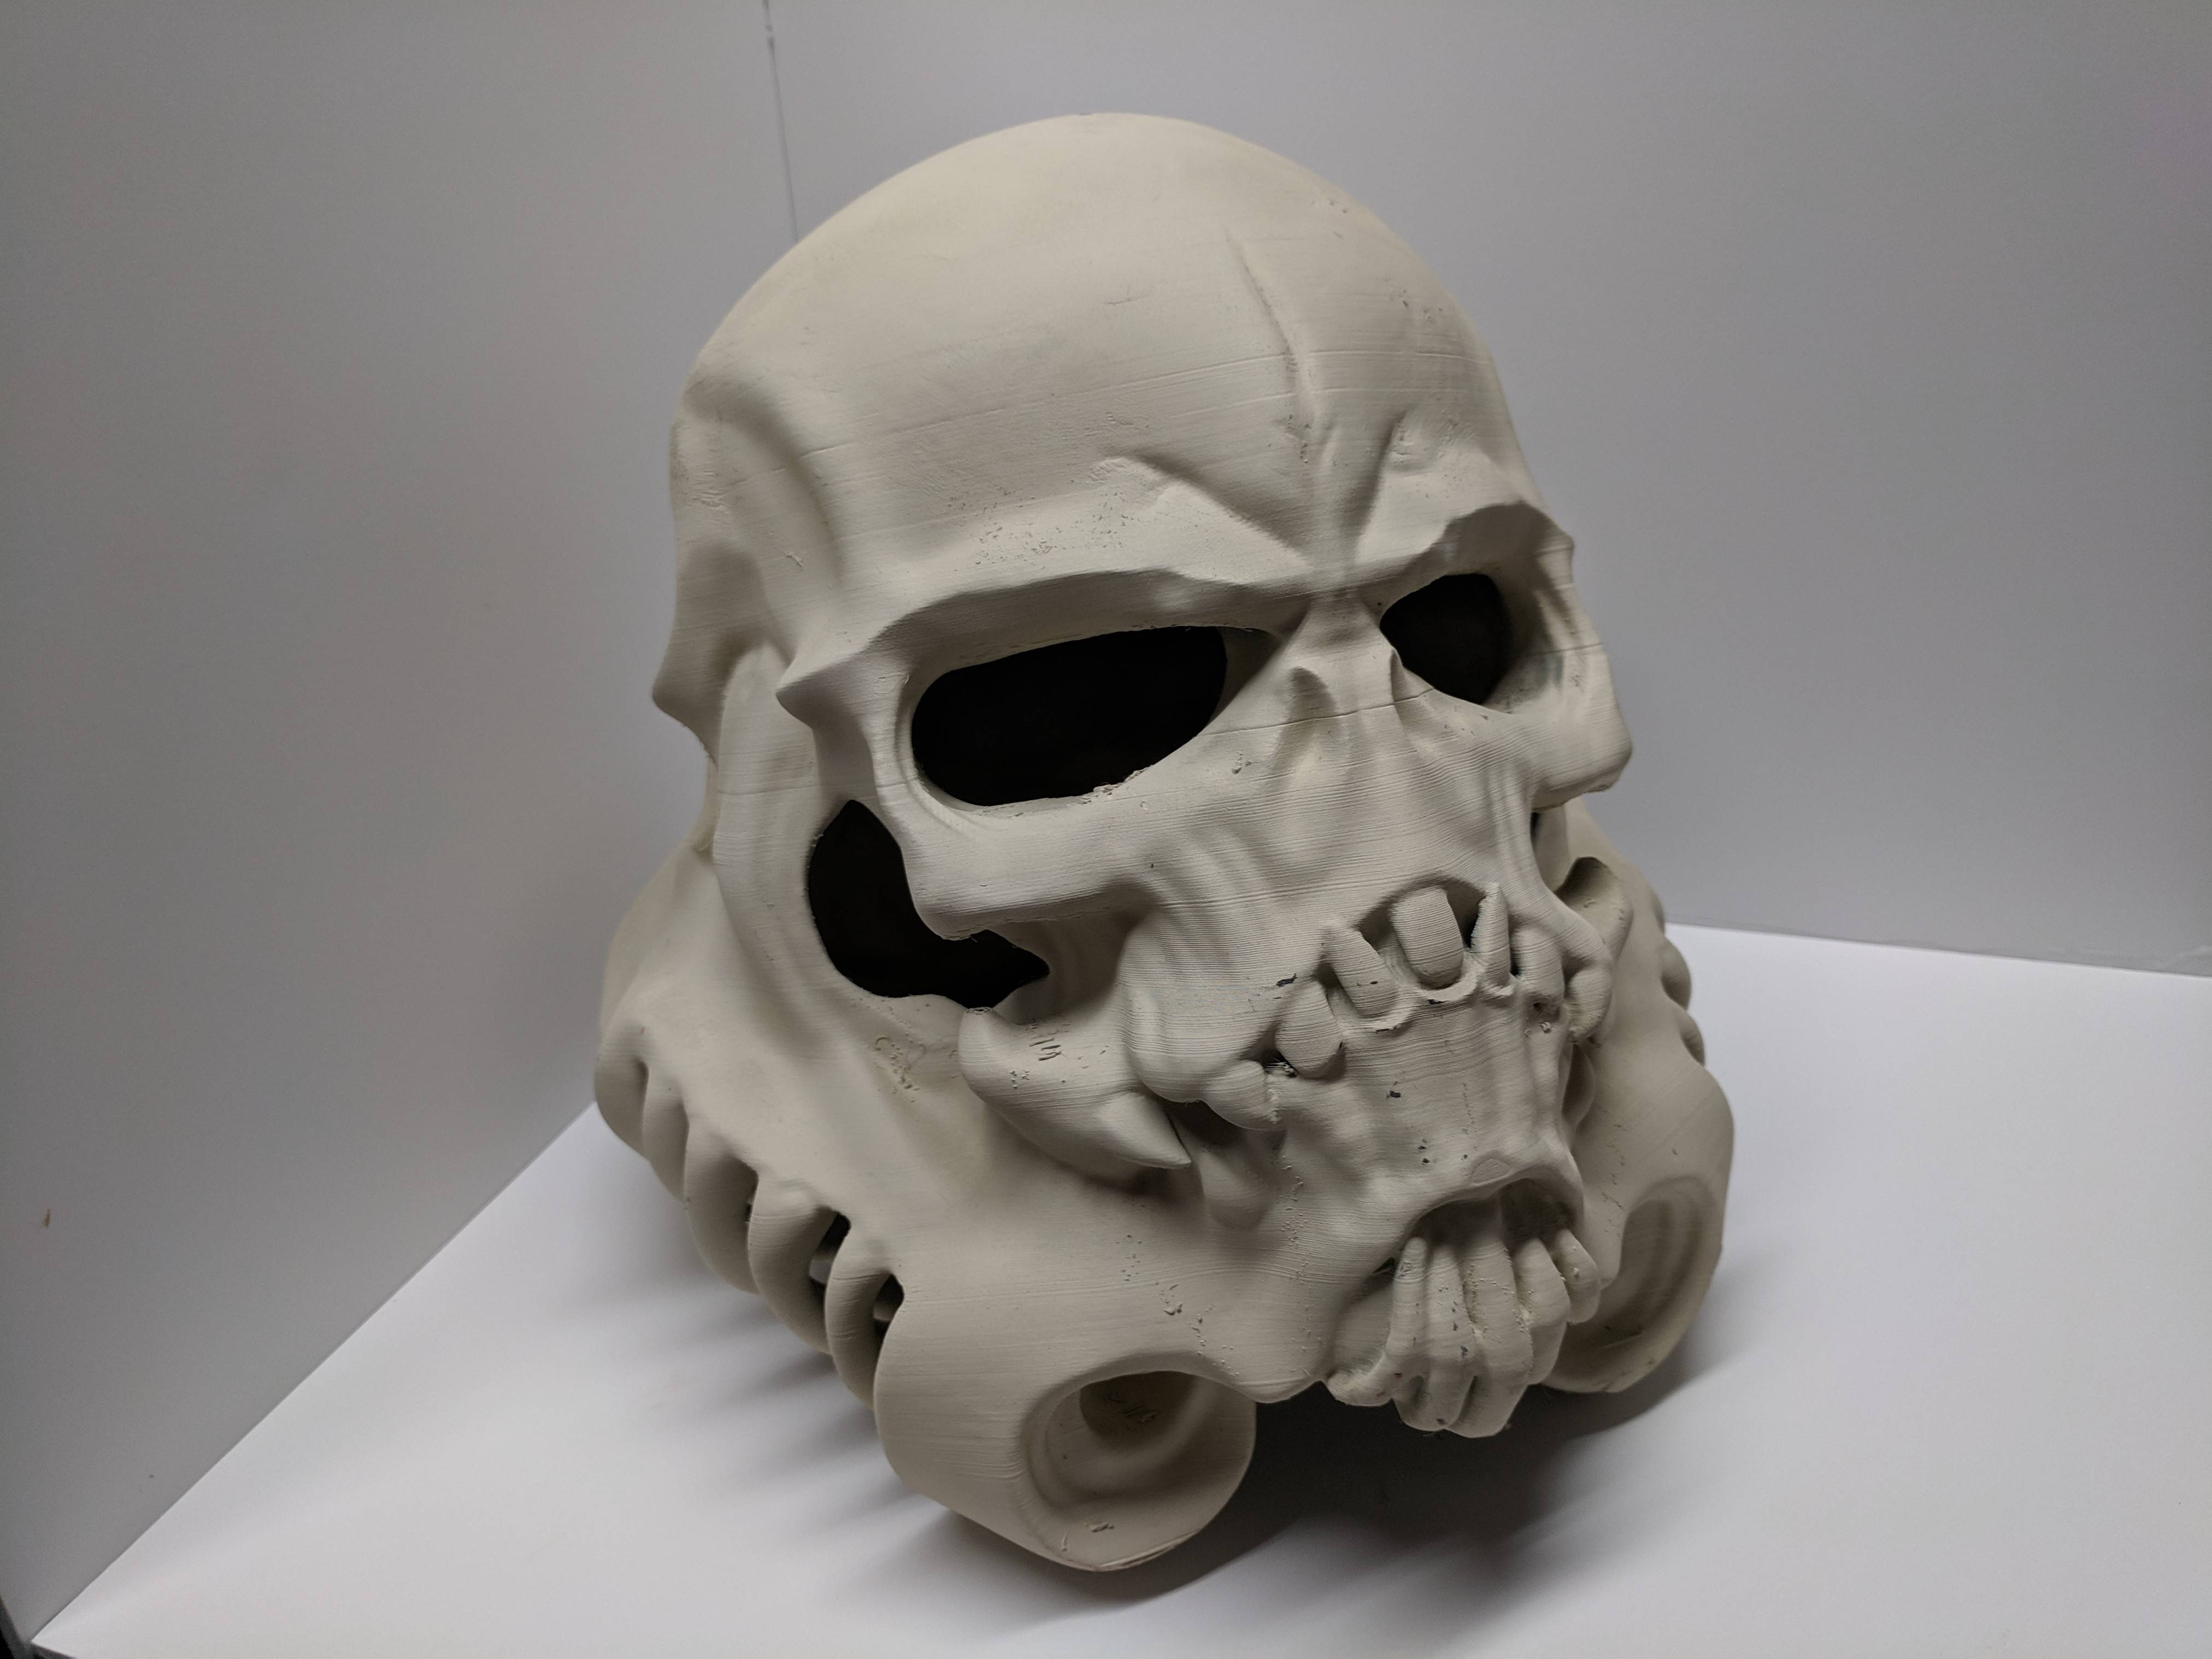 Fan creations: 3d printed this skull Trooper